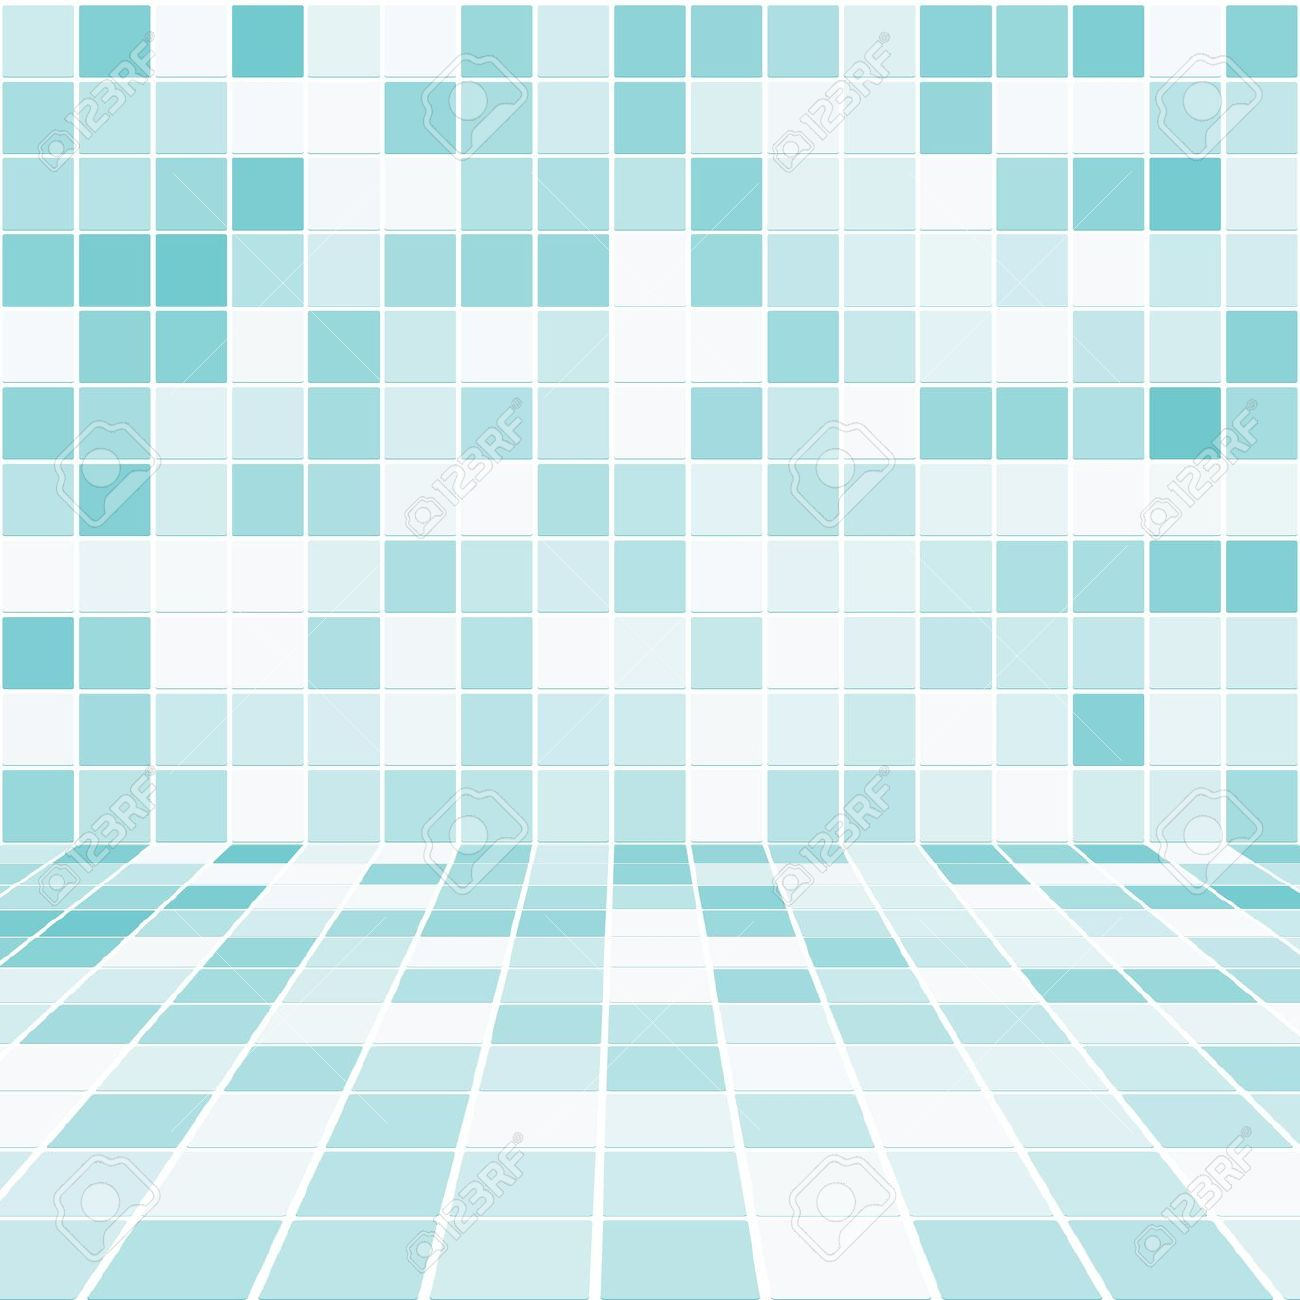 Bathroom Floor Clipart : Tiles clipart clipground